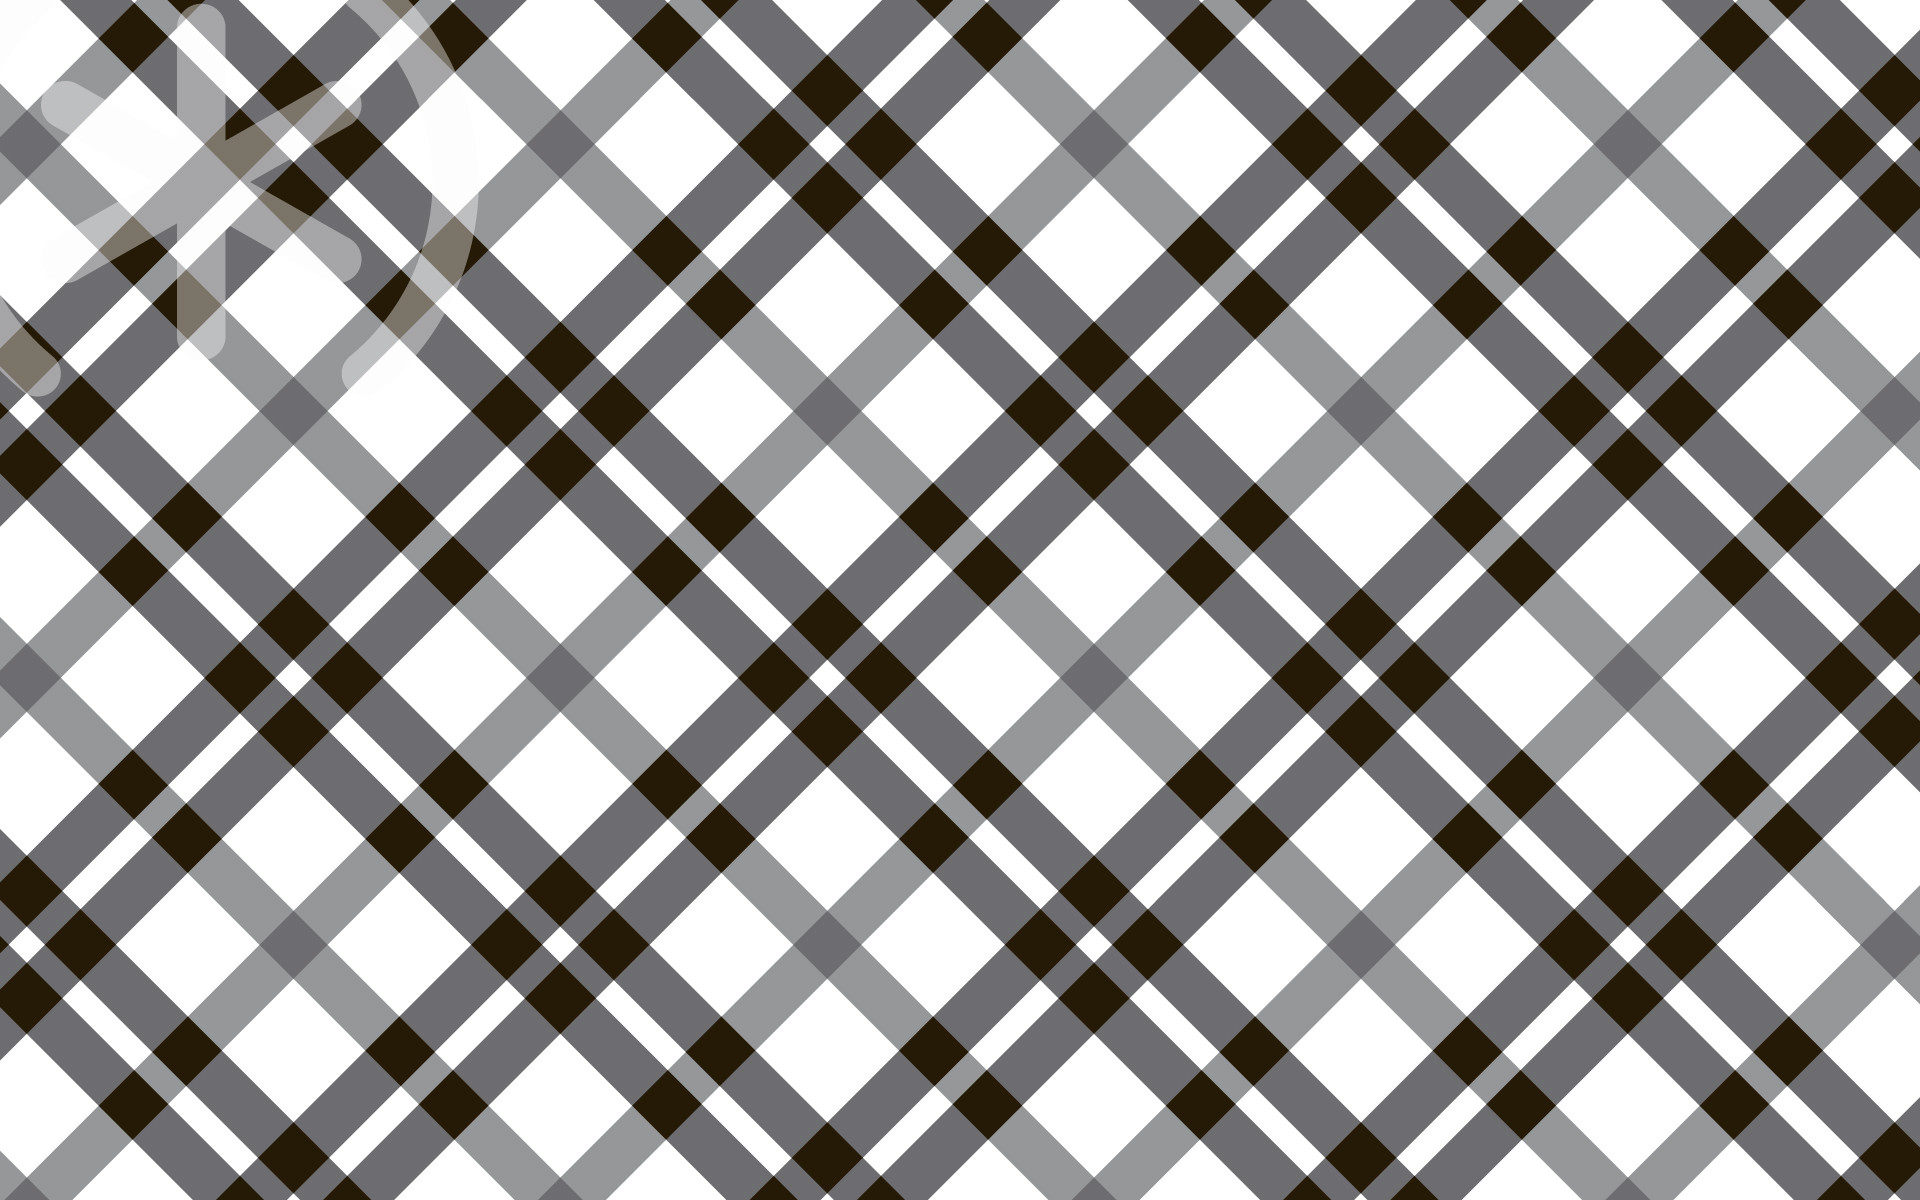 Black and white wallpaper clipart clip art transparent library Black and White Checkerboard Wallpaper (47+ images) clip art transparent library